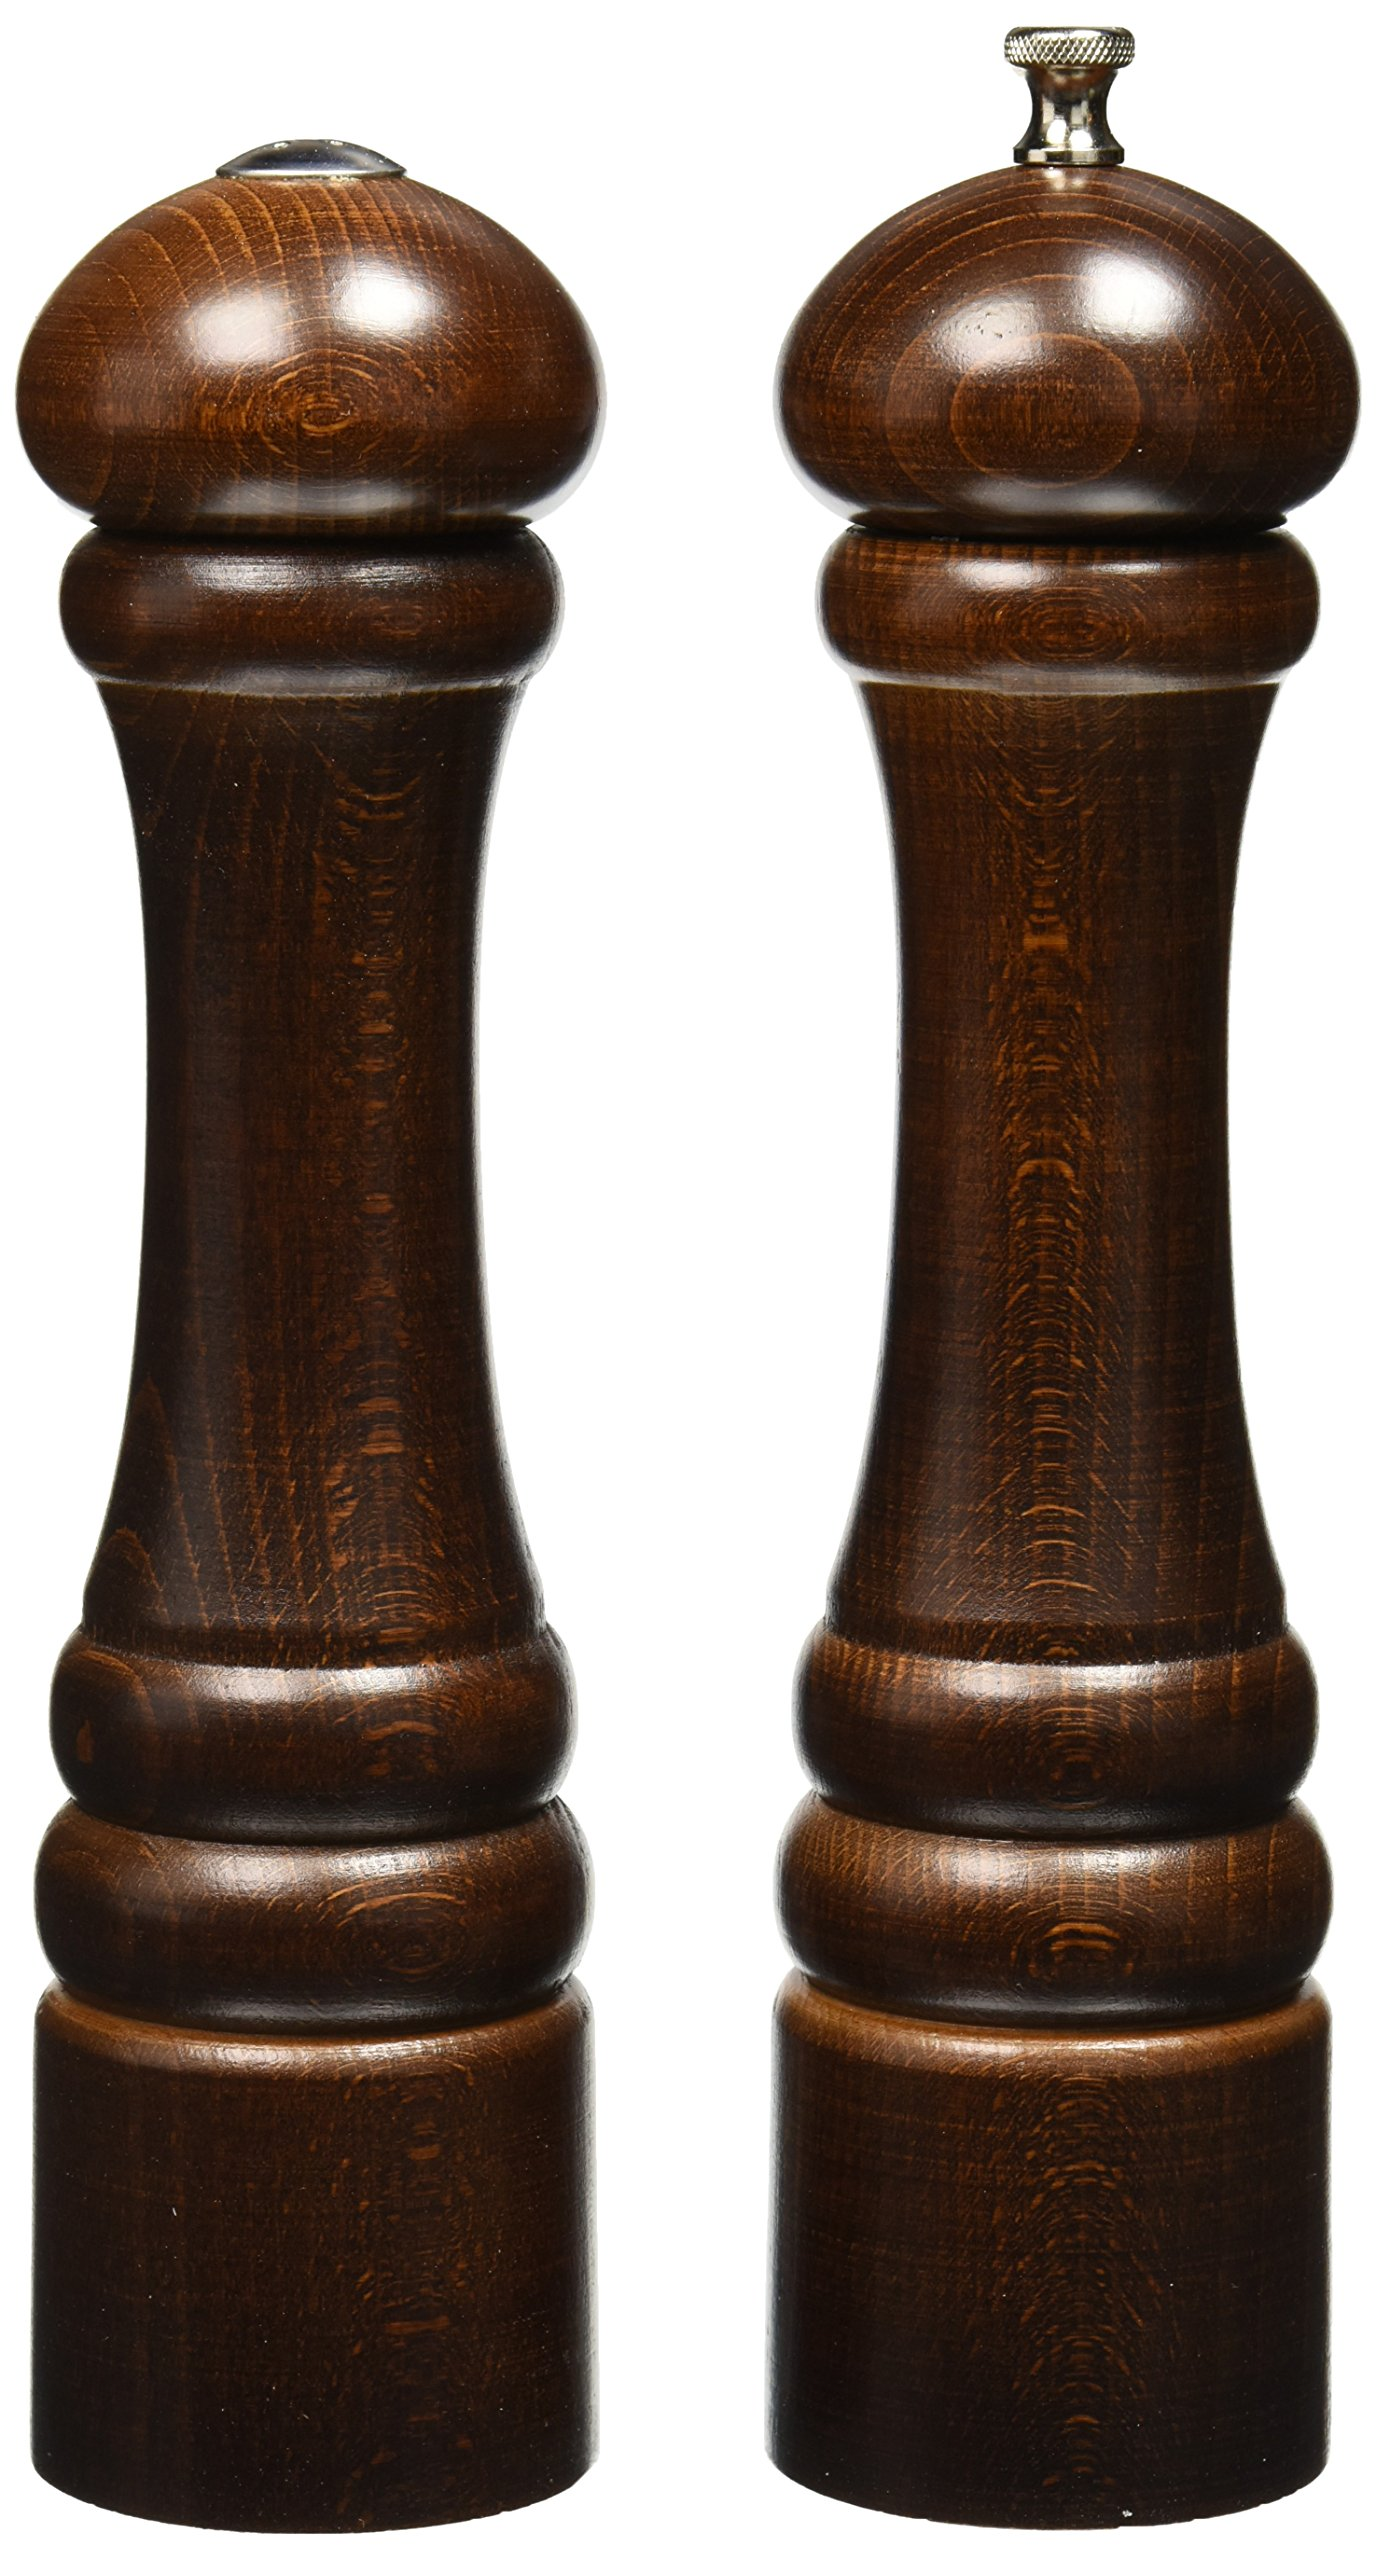 Chef Specialties 10'' Imperial Pepper Mill and Salt Shaker Set, Walnut by Chef Specialties